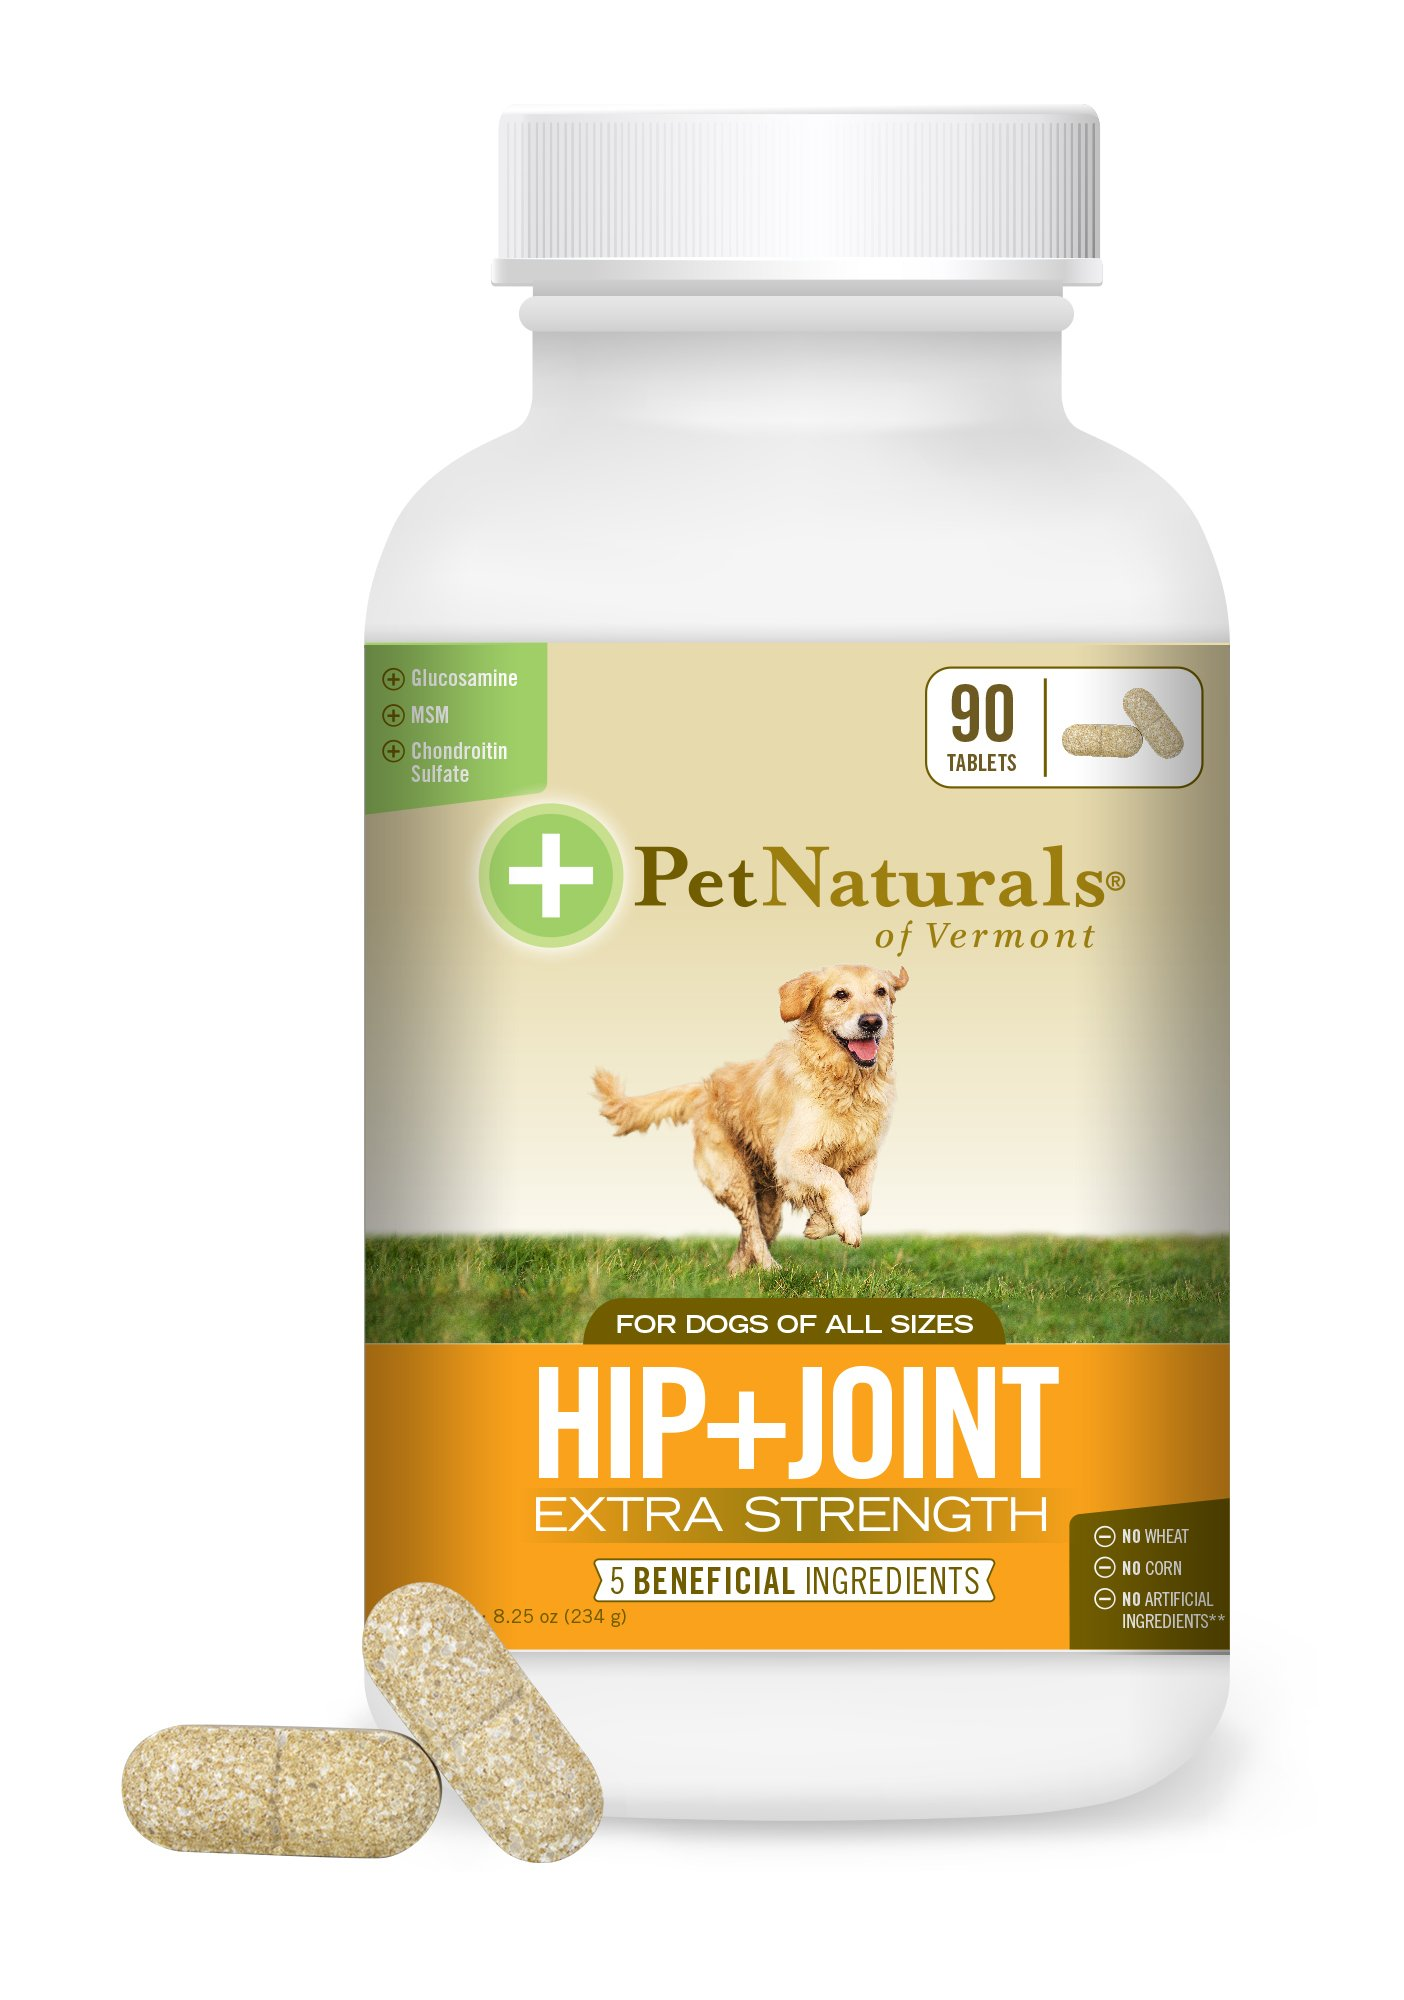 Pet Naturals of Vermont - Hip + Joint Extra Strength, Joint Supplement for Dogs, 90 Chewable Tablets